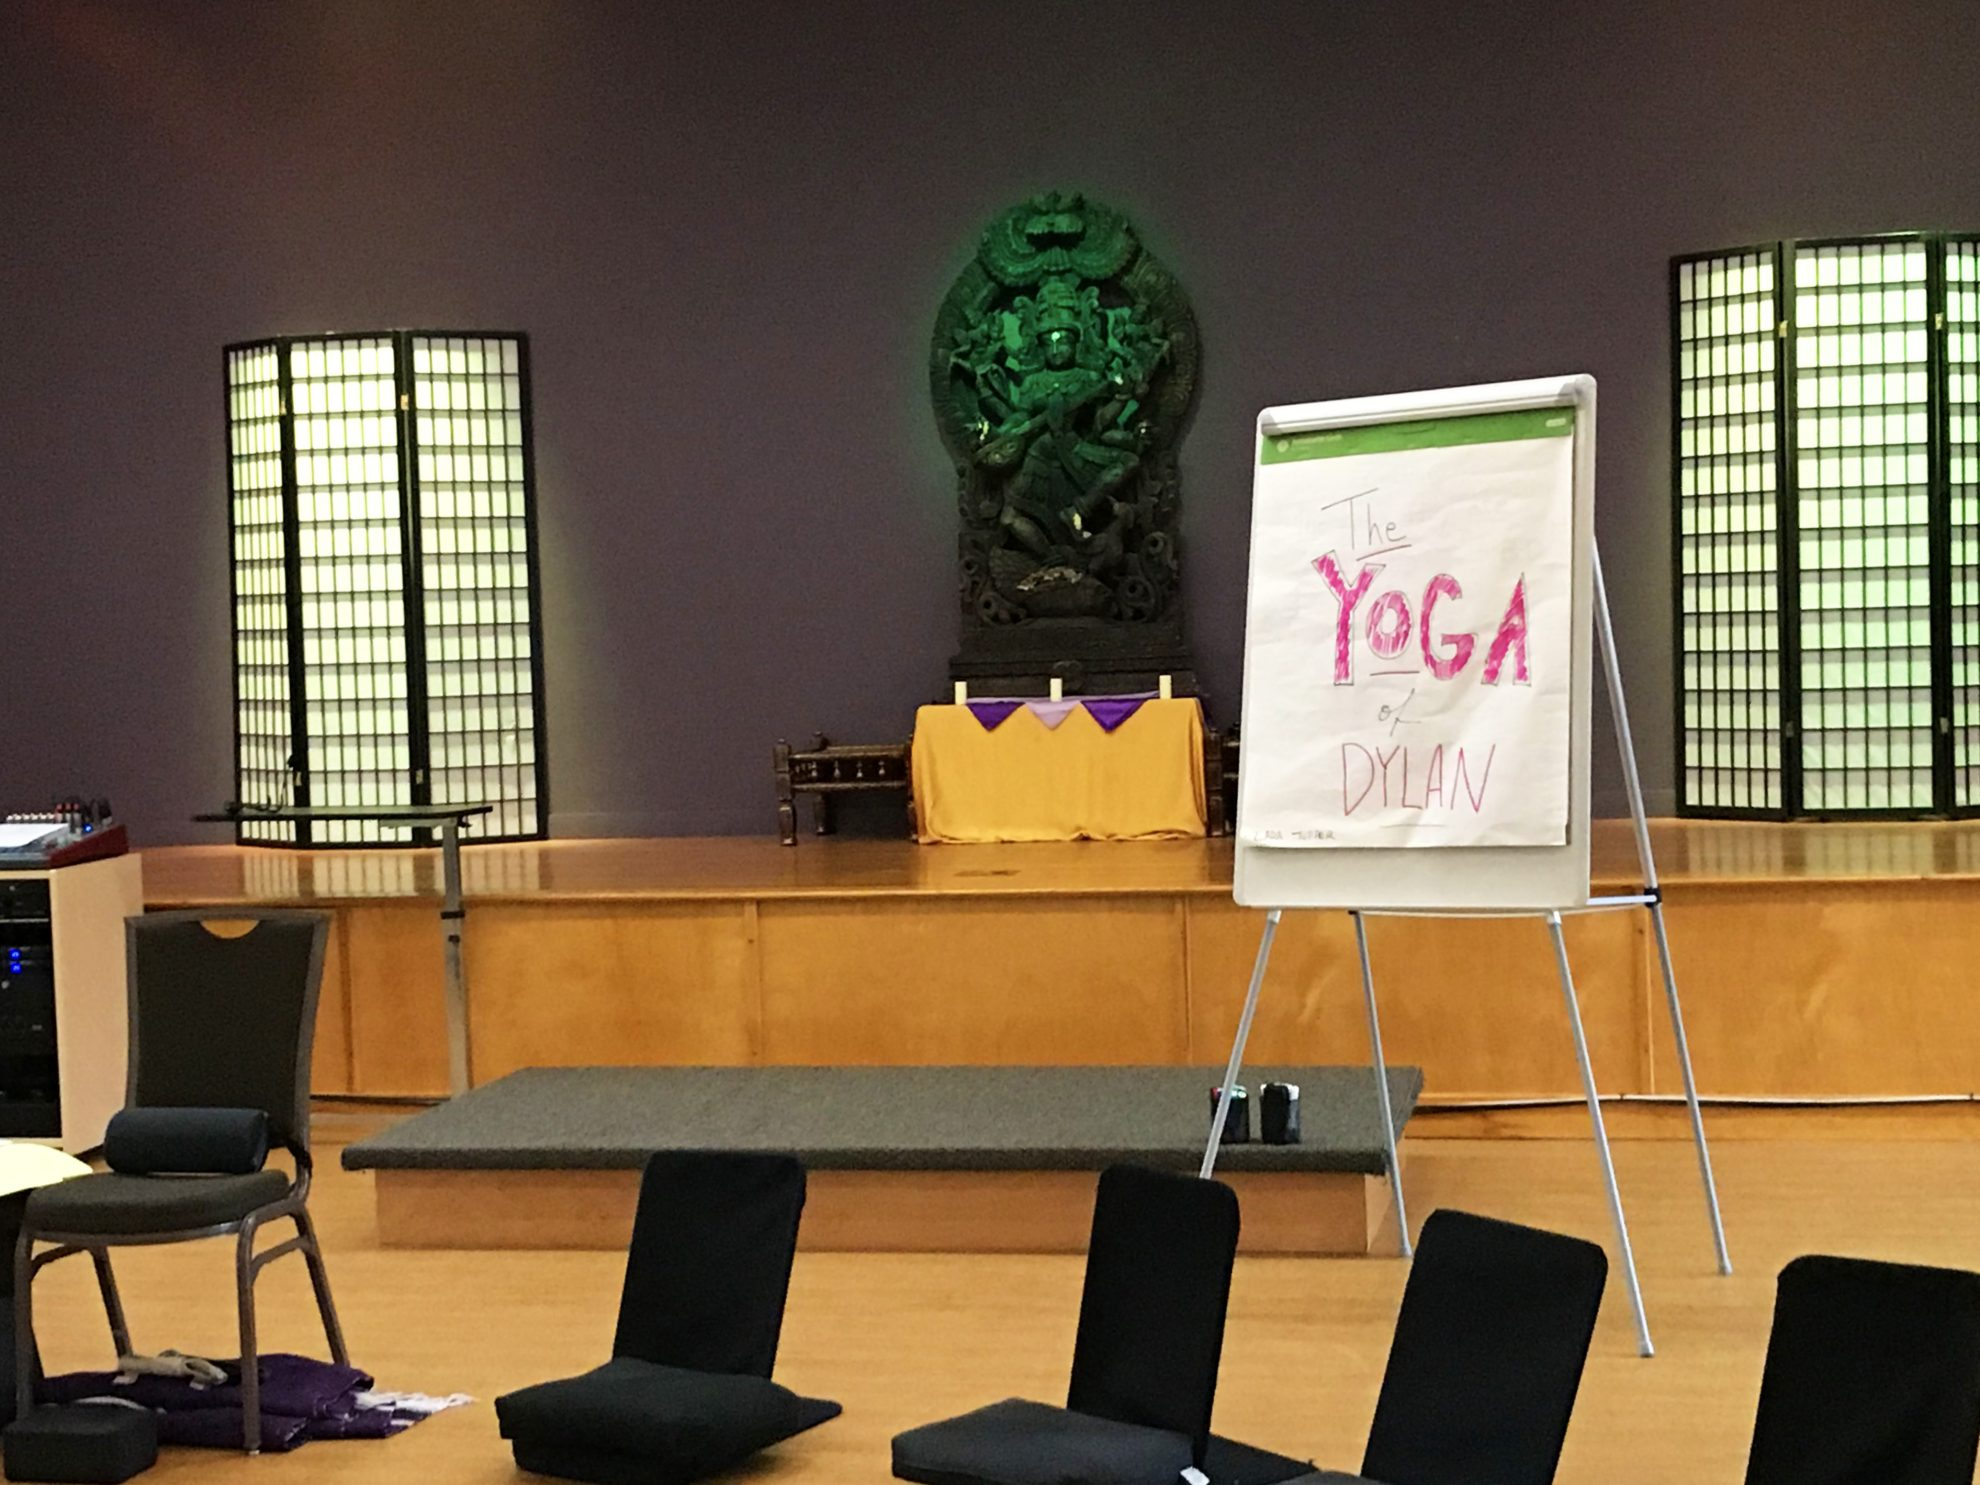 Photo from the Yoga of Dylan class that was offered as part of the Kripalu day pass at Kripalu Center for Yoga and Health